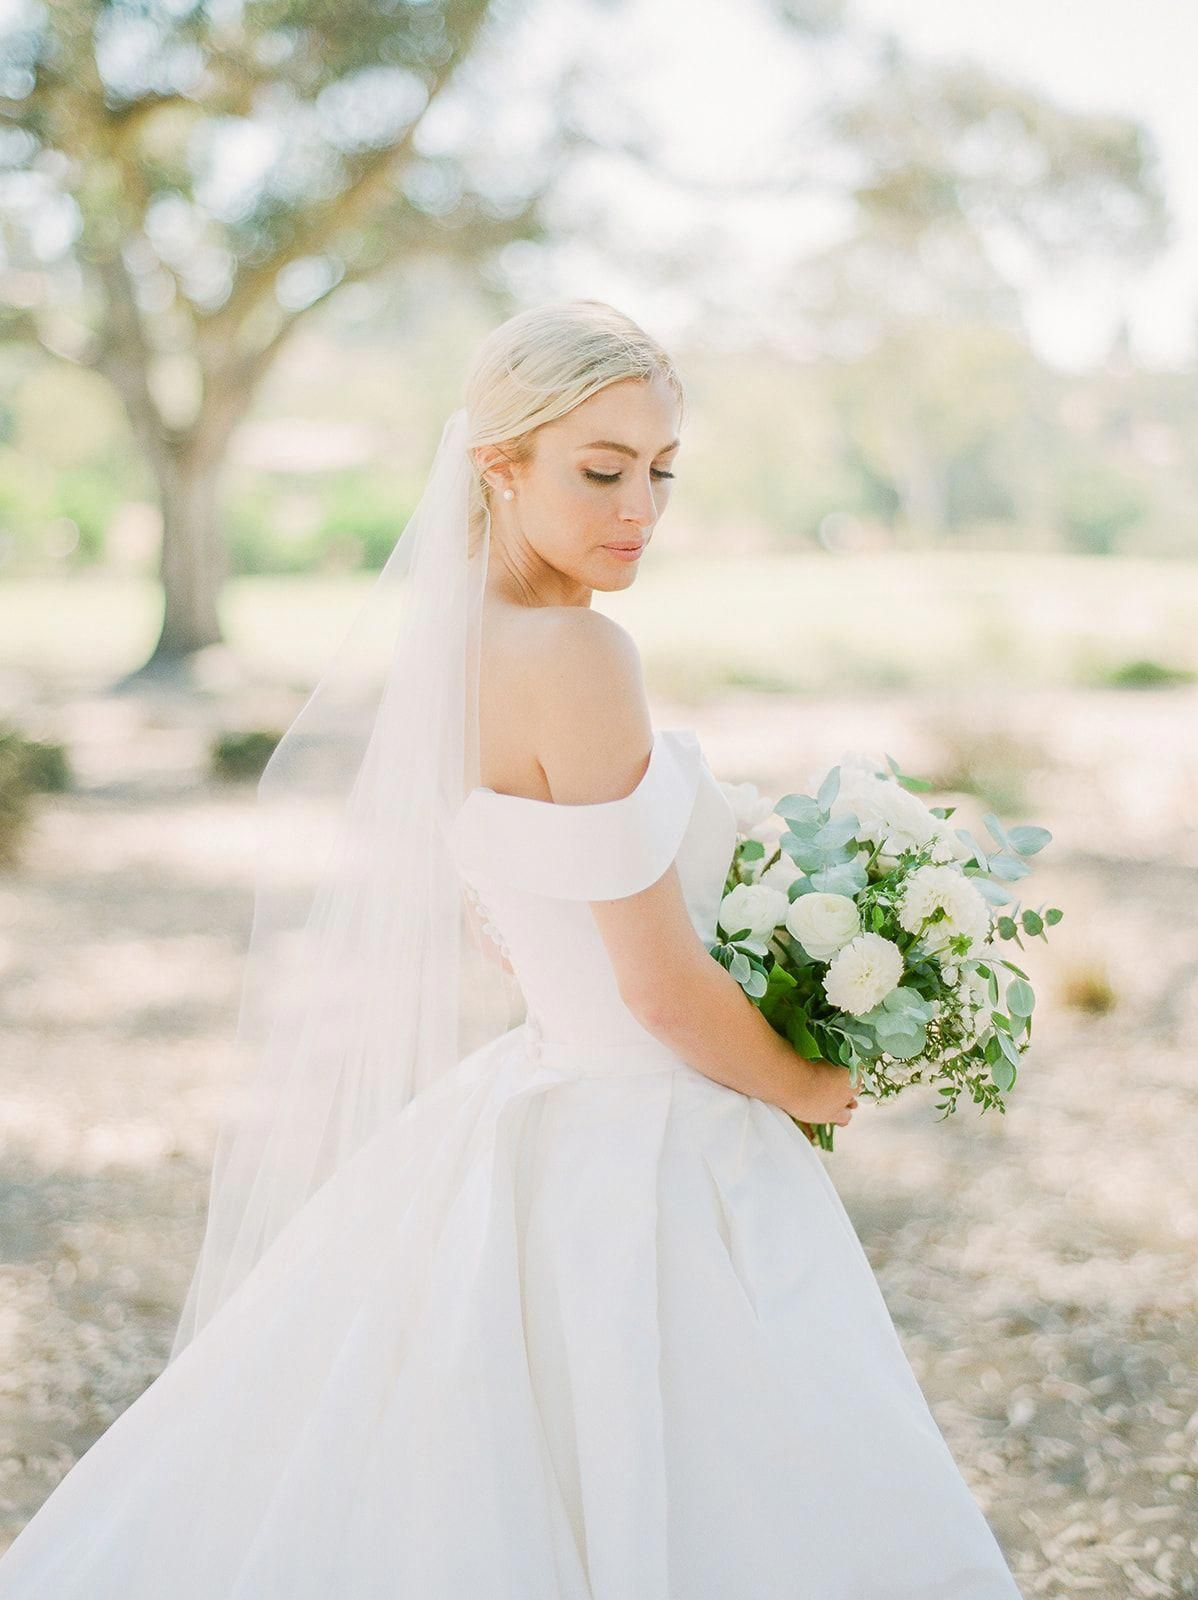 Classic Off Shoulder Wedding Gown And Lush White Green Bouquet